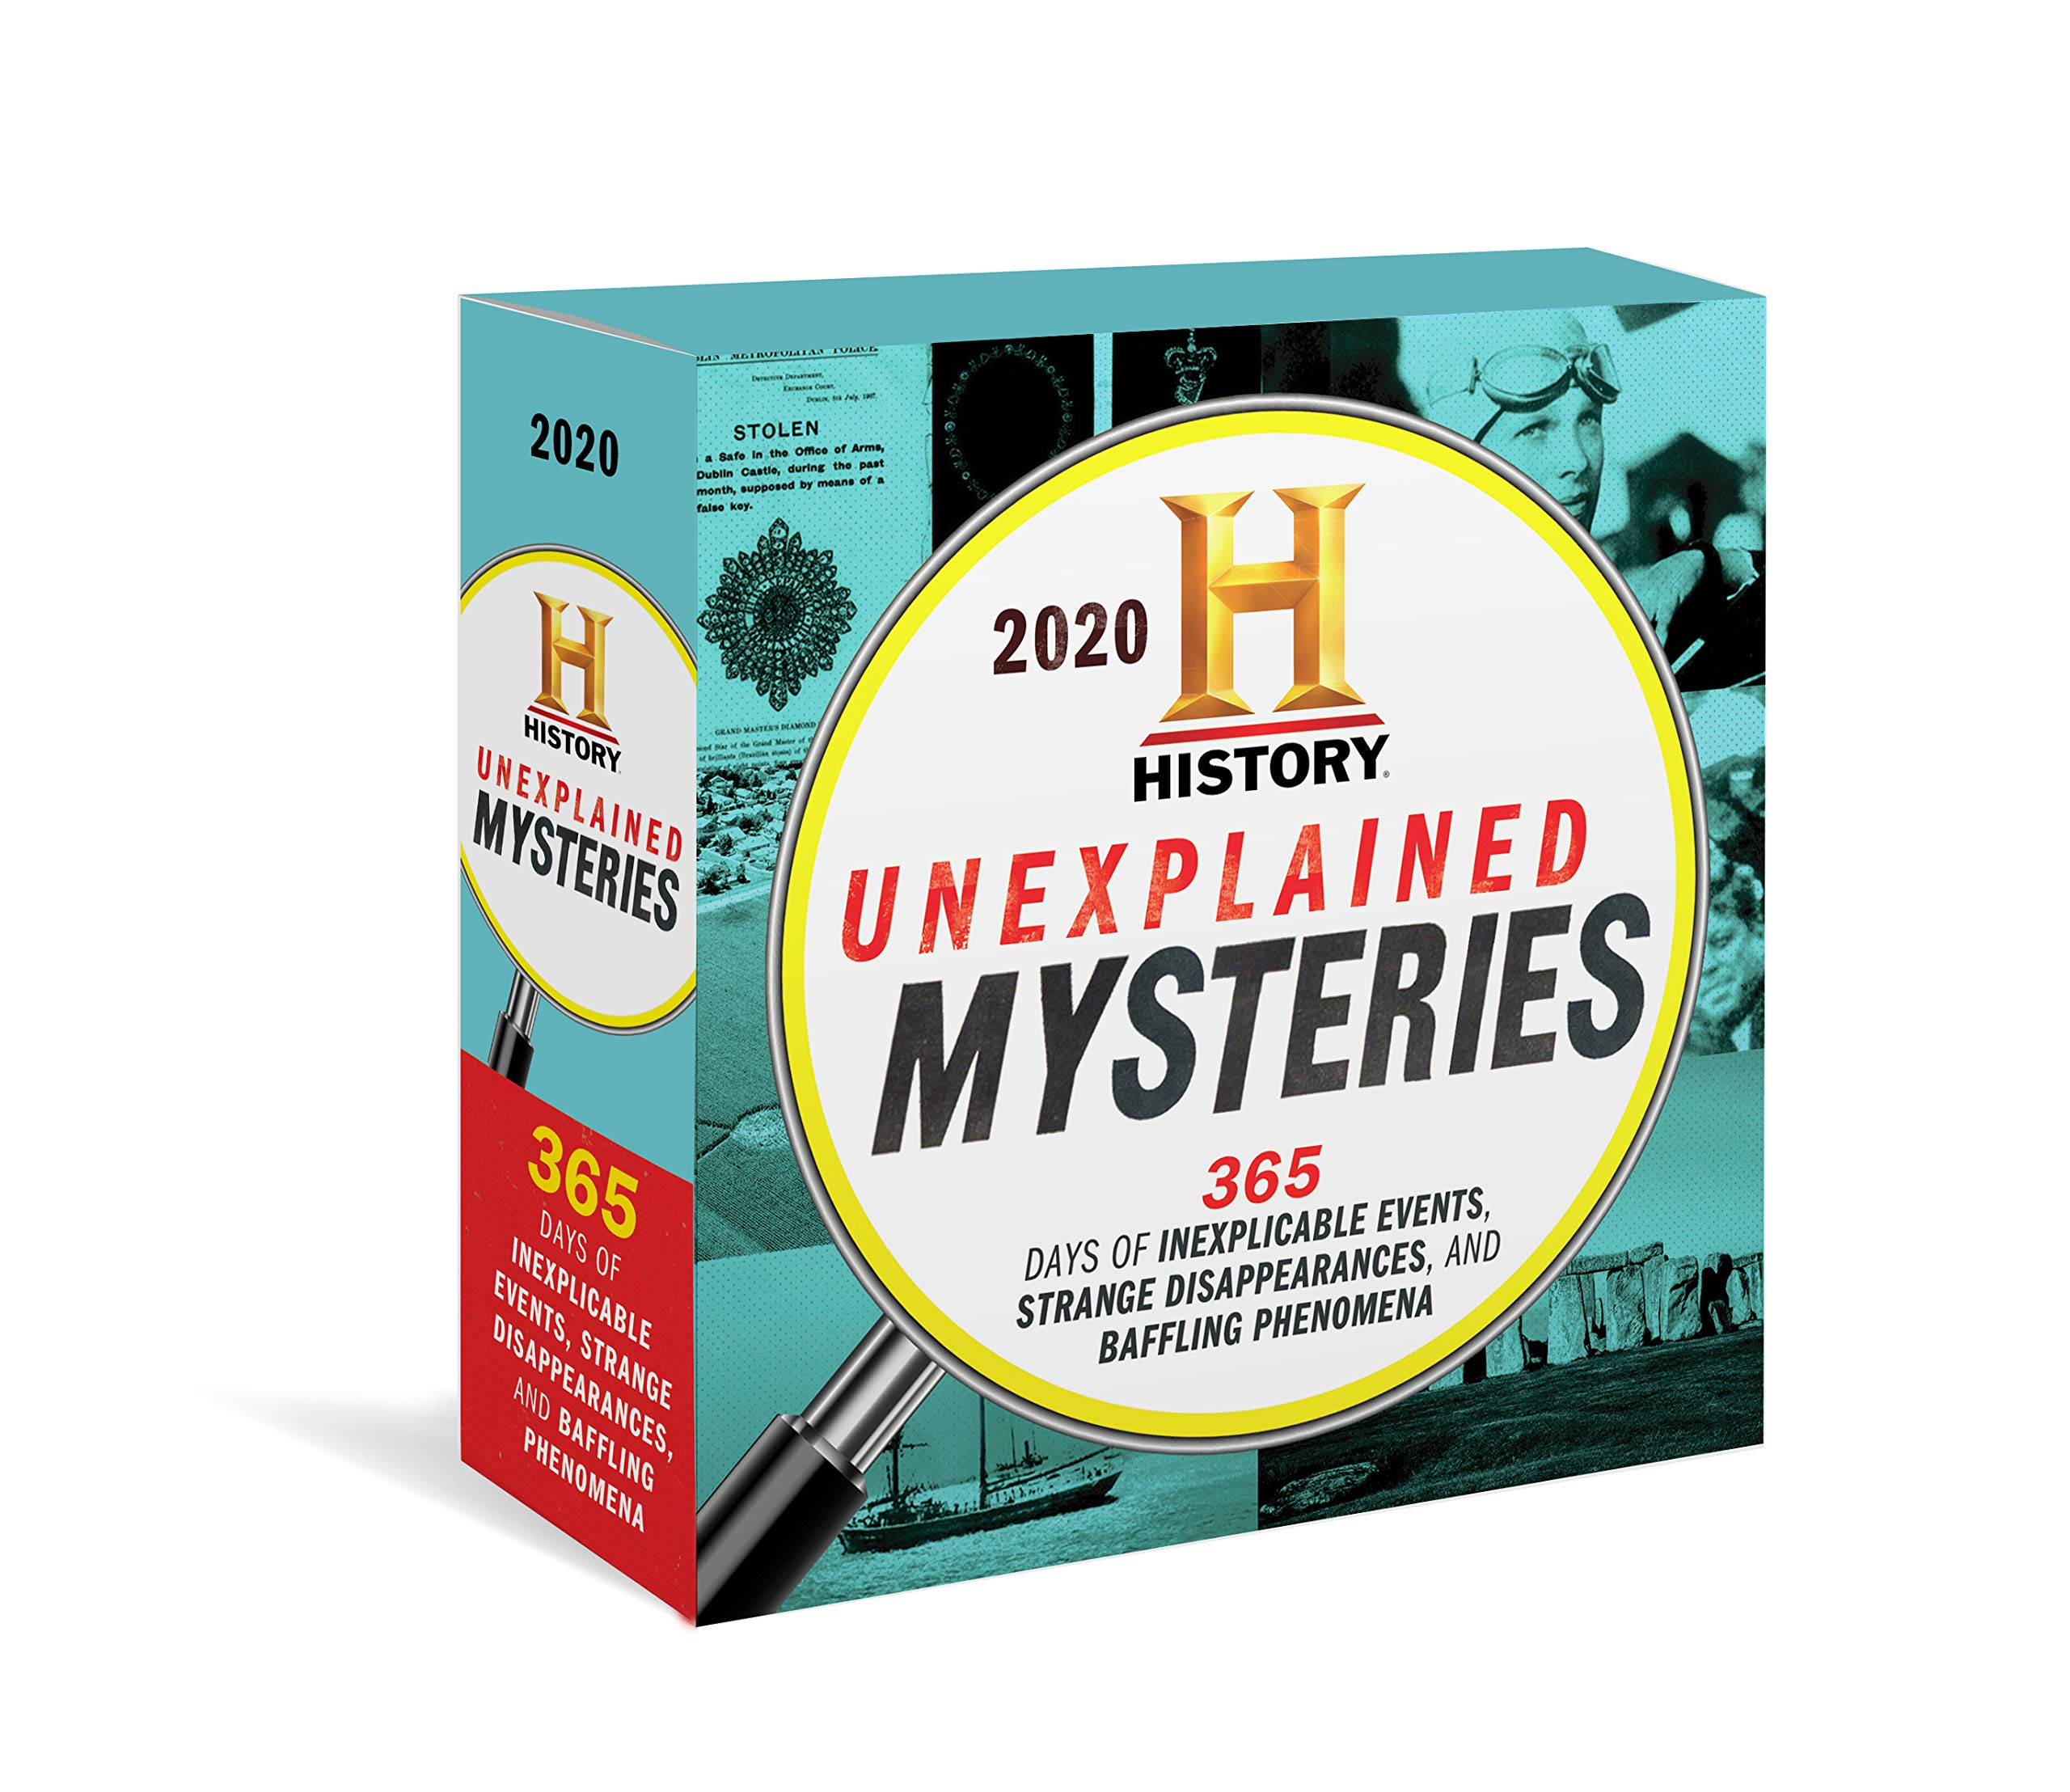 2020 History Channel Unexplained Mysteries Boxed Calendar: 365 Days of Inexplicable Events, Strange Disappearances, and Baffling Phenomena by Sourcebooks Gift Sales